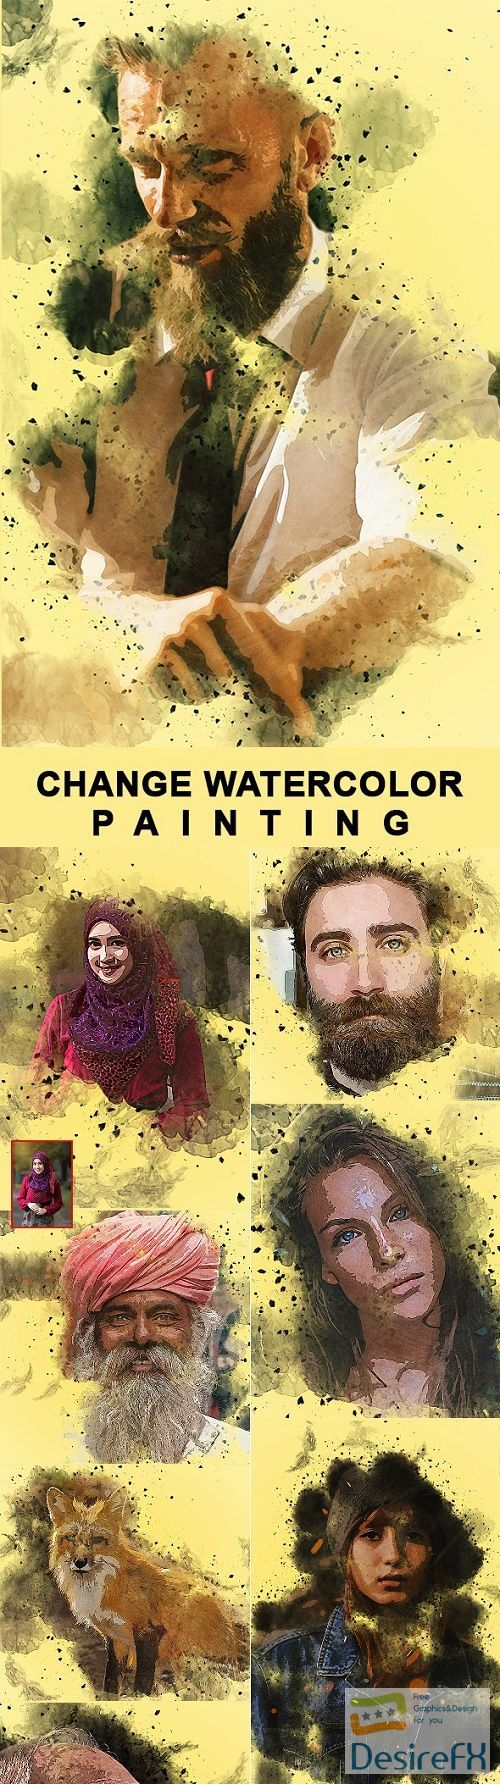 Change Watercolor Painting Photoshop Action 25748479 In 2020